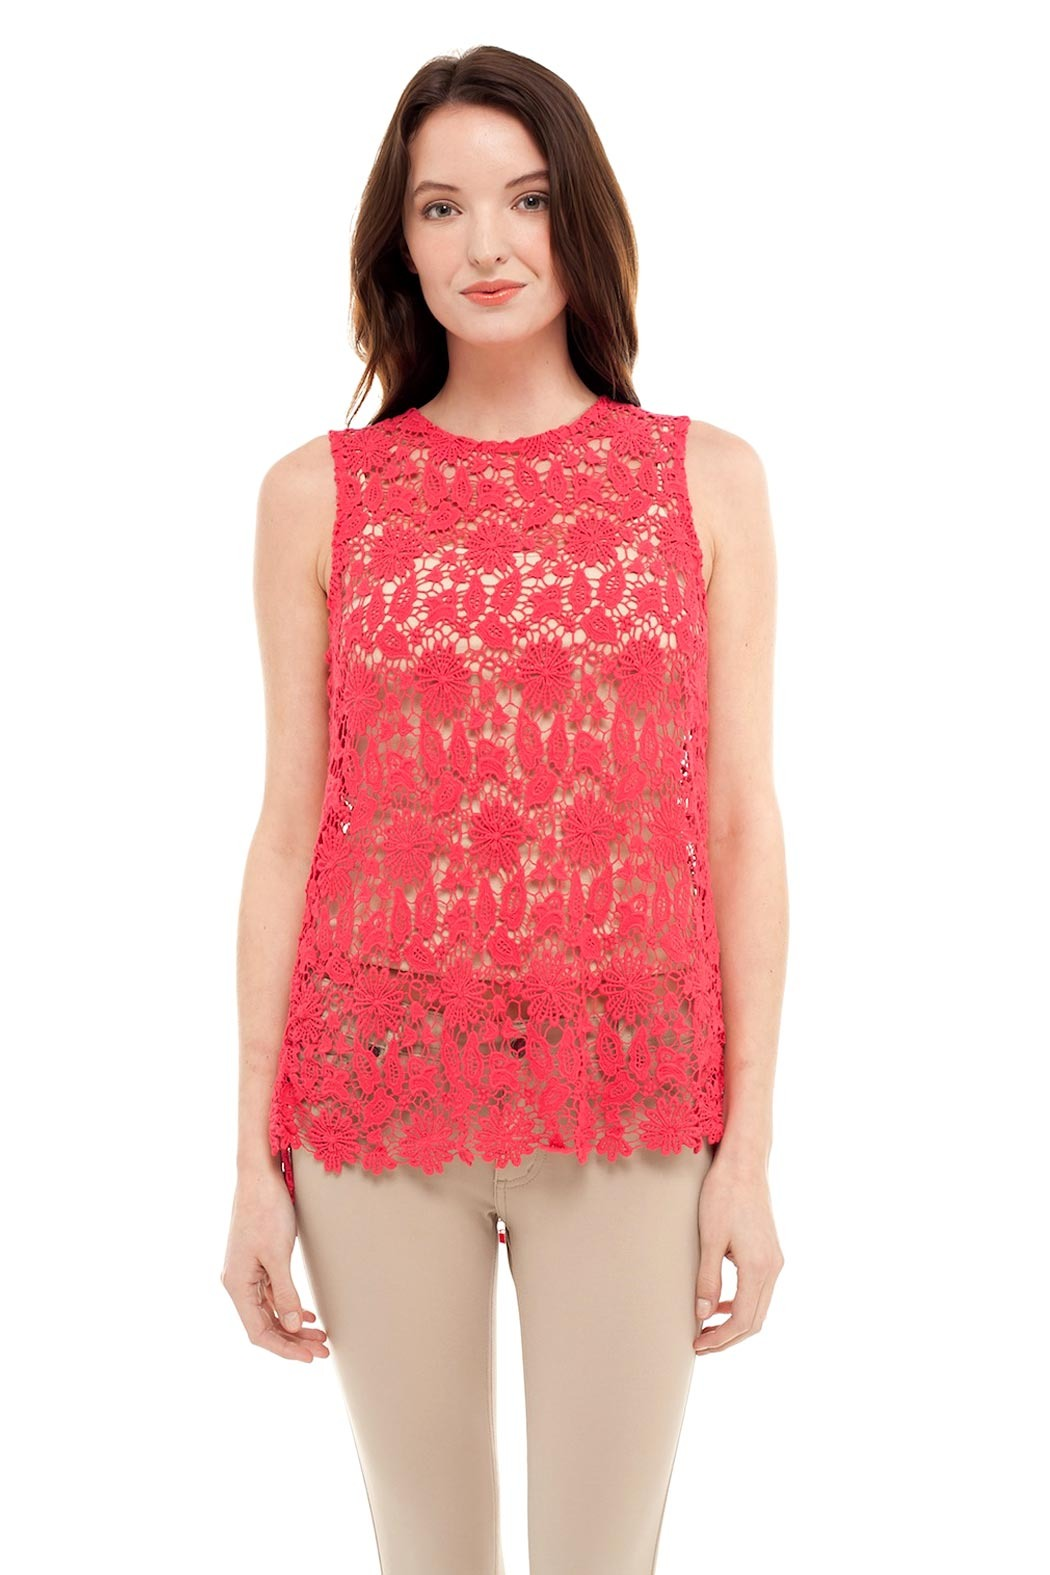 Alison Stiles Lace Crochet Knit Top - Front Cropped Image